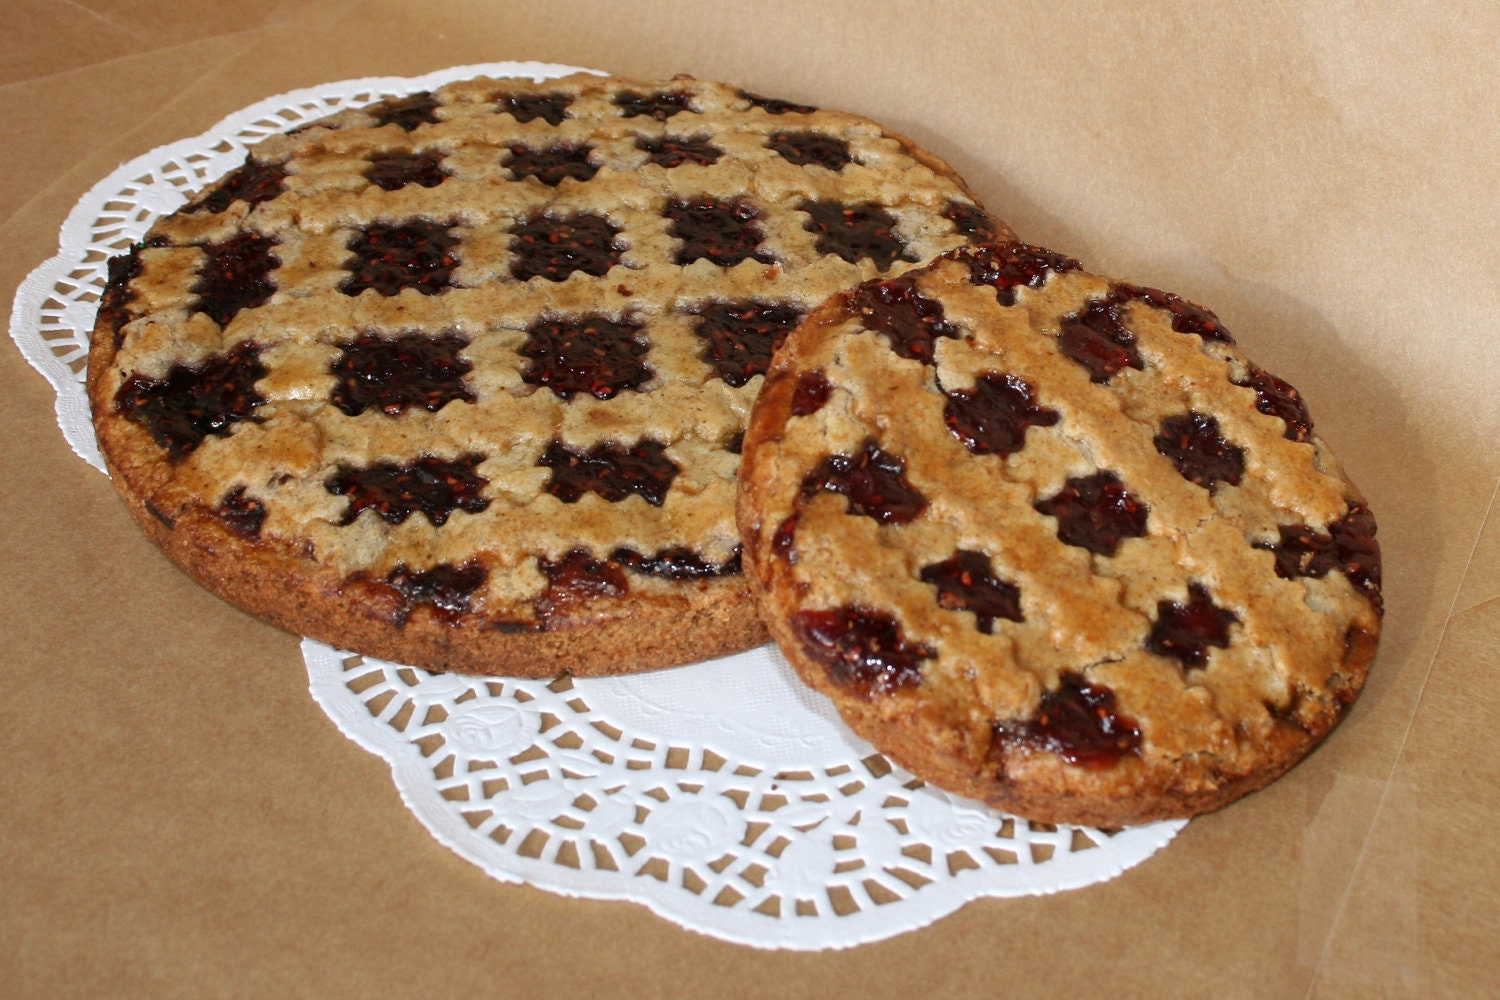 Linzer torte tart strawberry raspberry by AngelikasSwissBakery